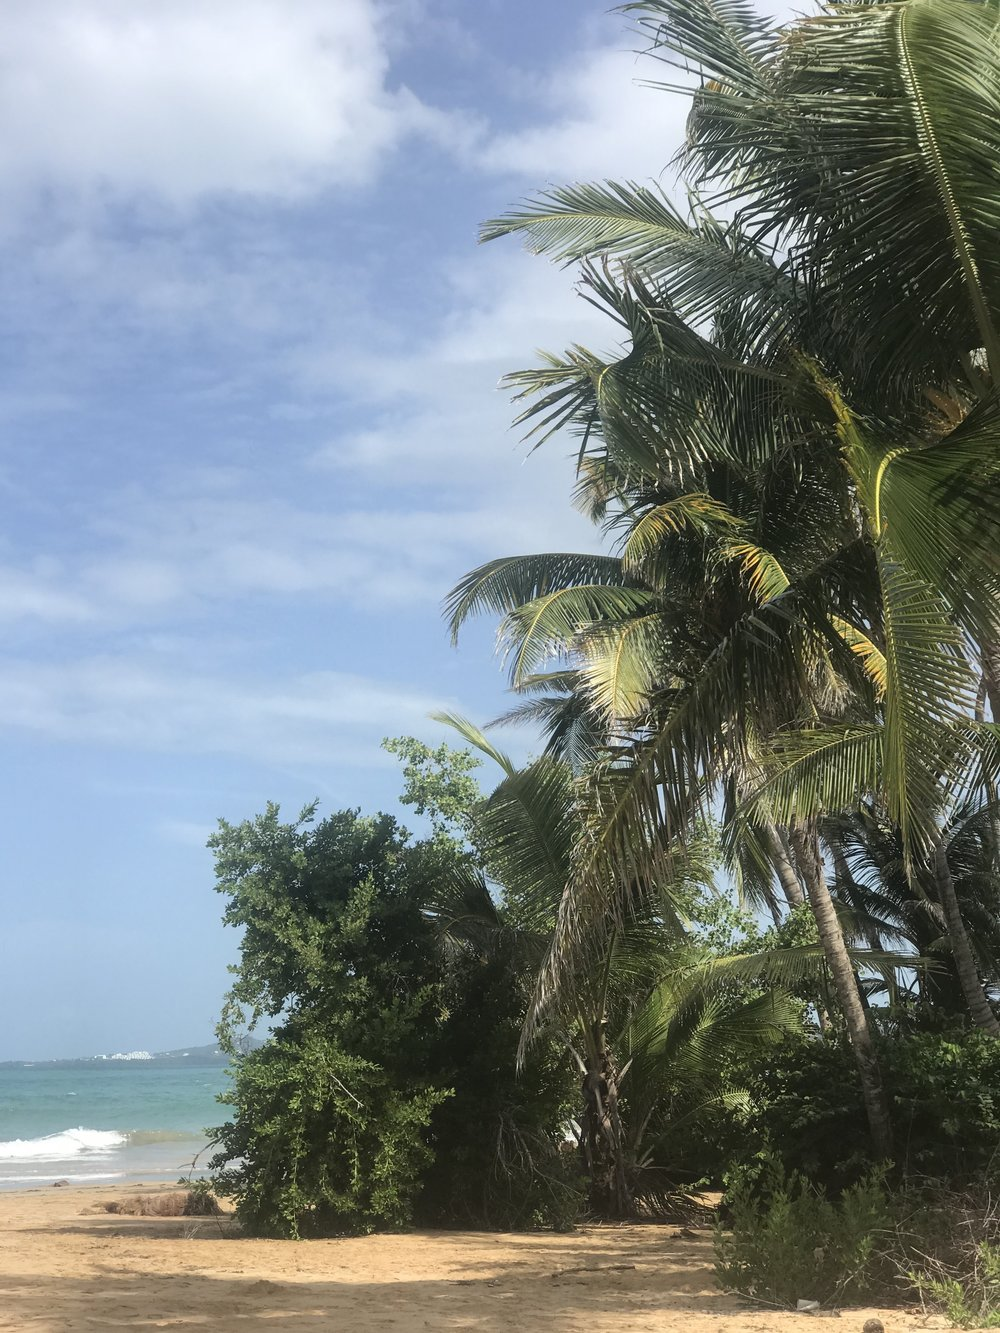 Luquillo, Puerto Rico - How I ended up in Puerto Rico!